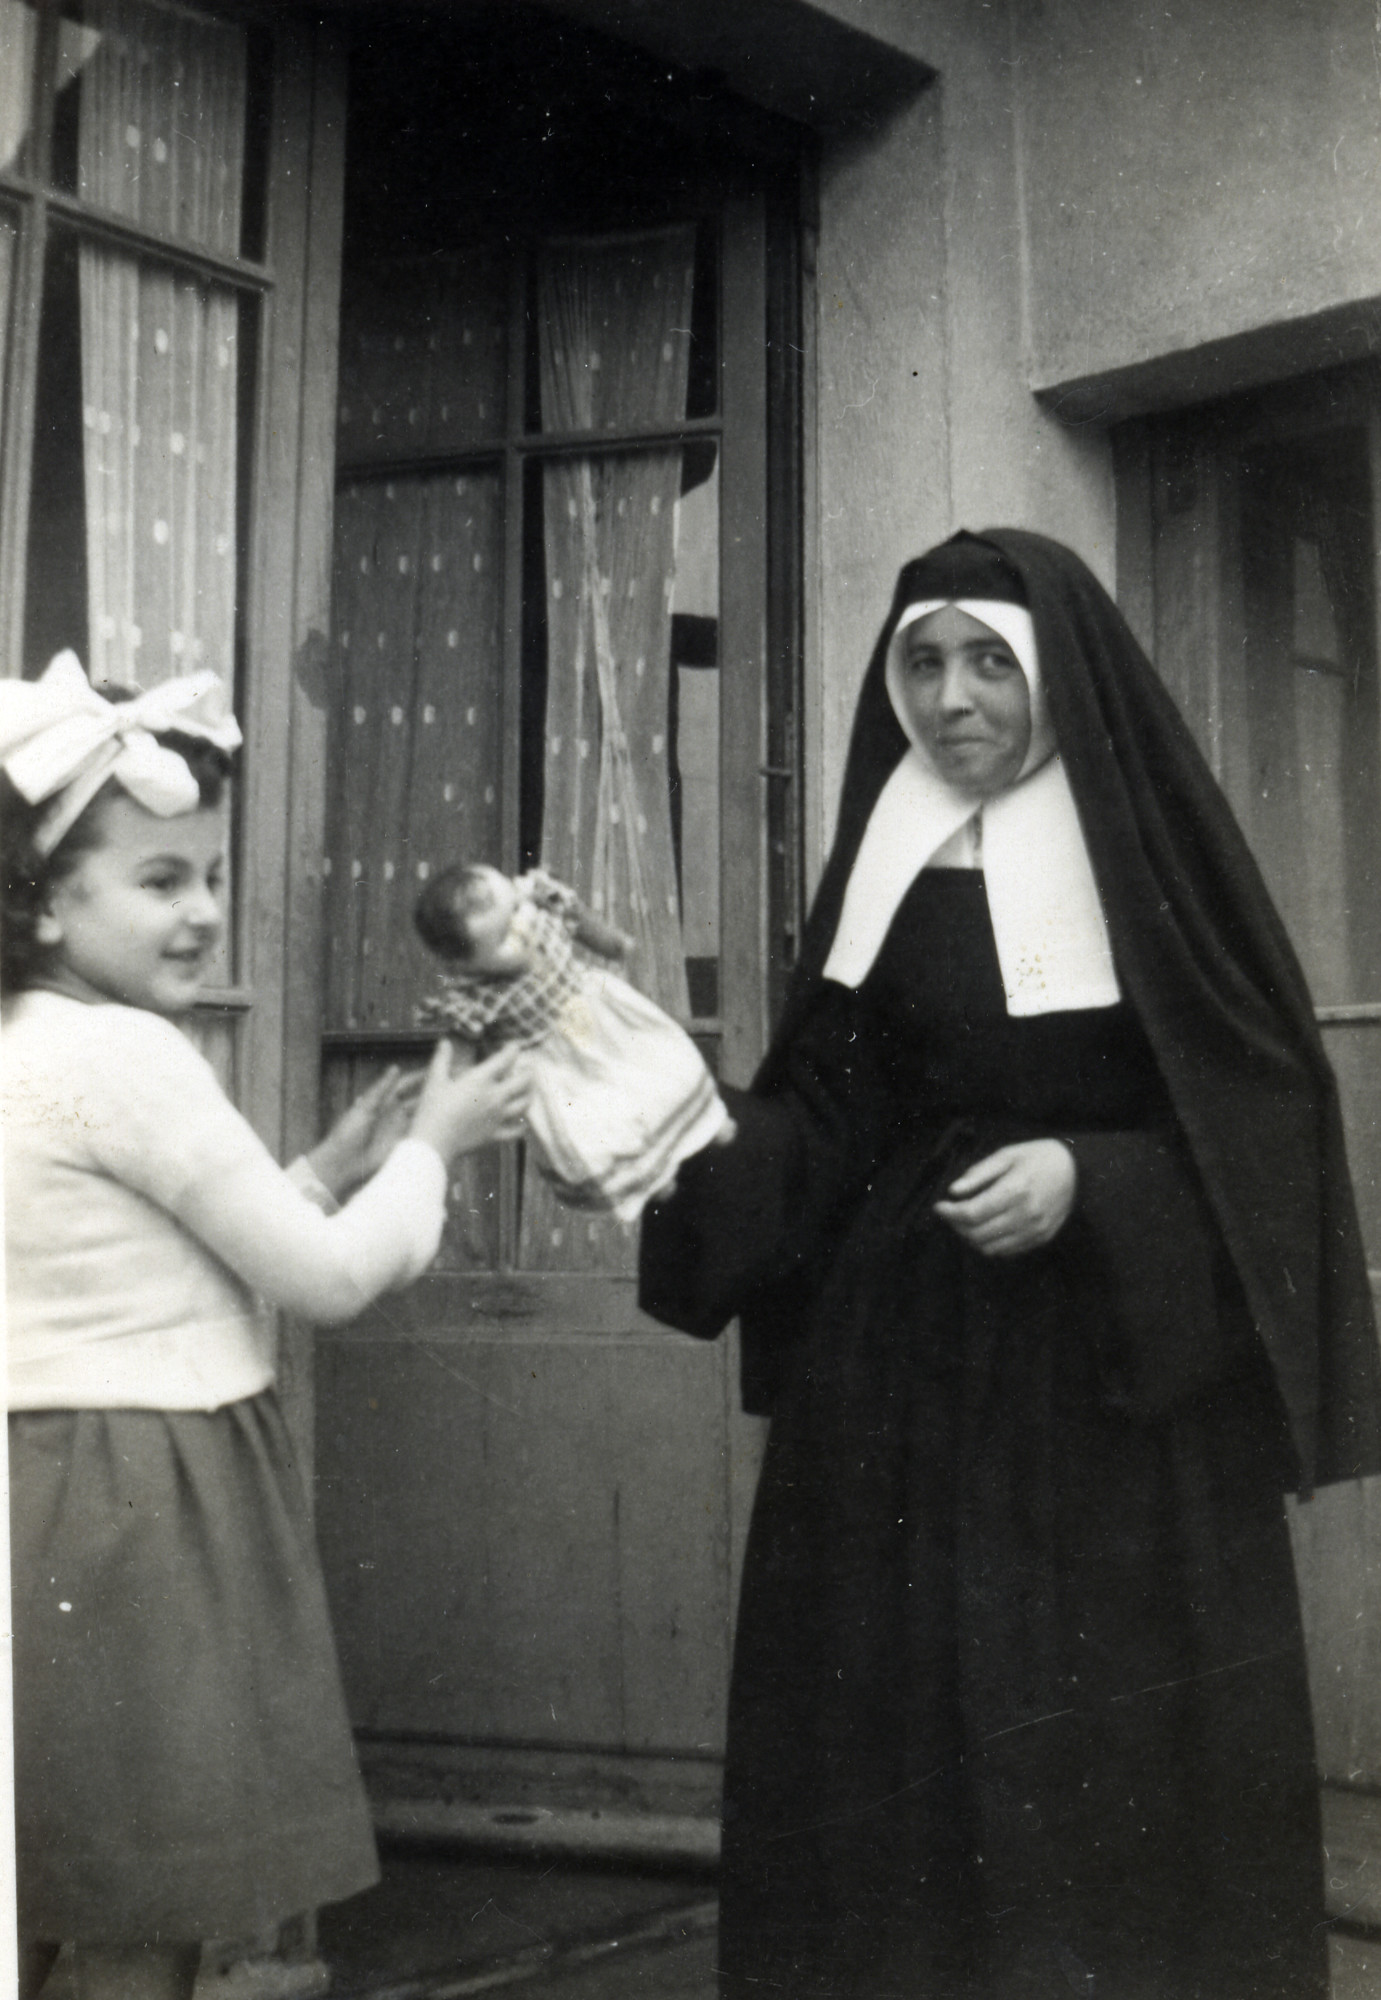 Claire and a nun play with a doll.